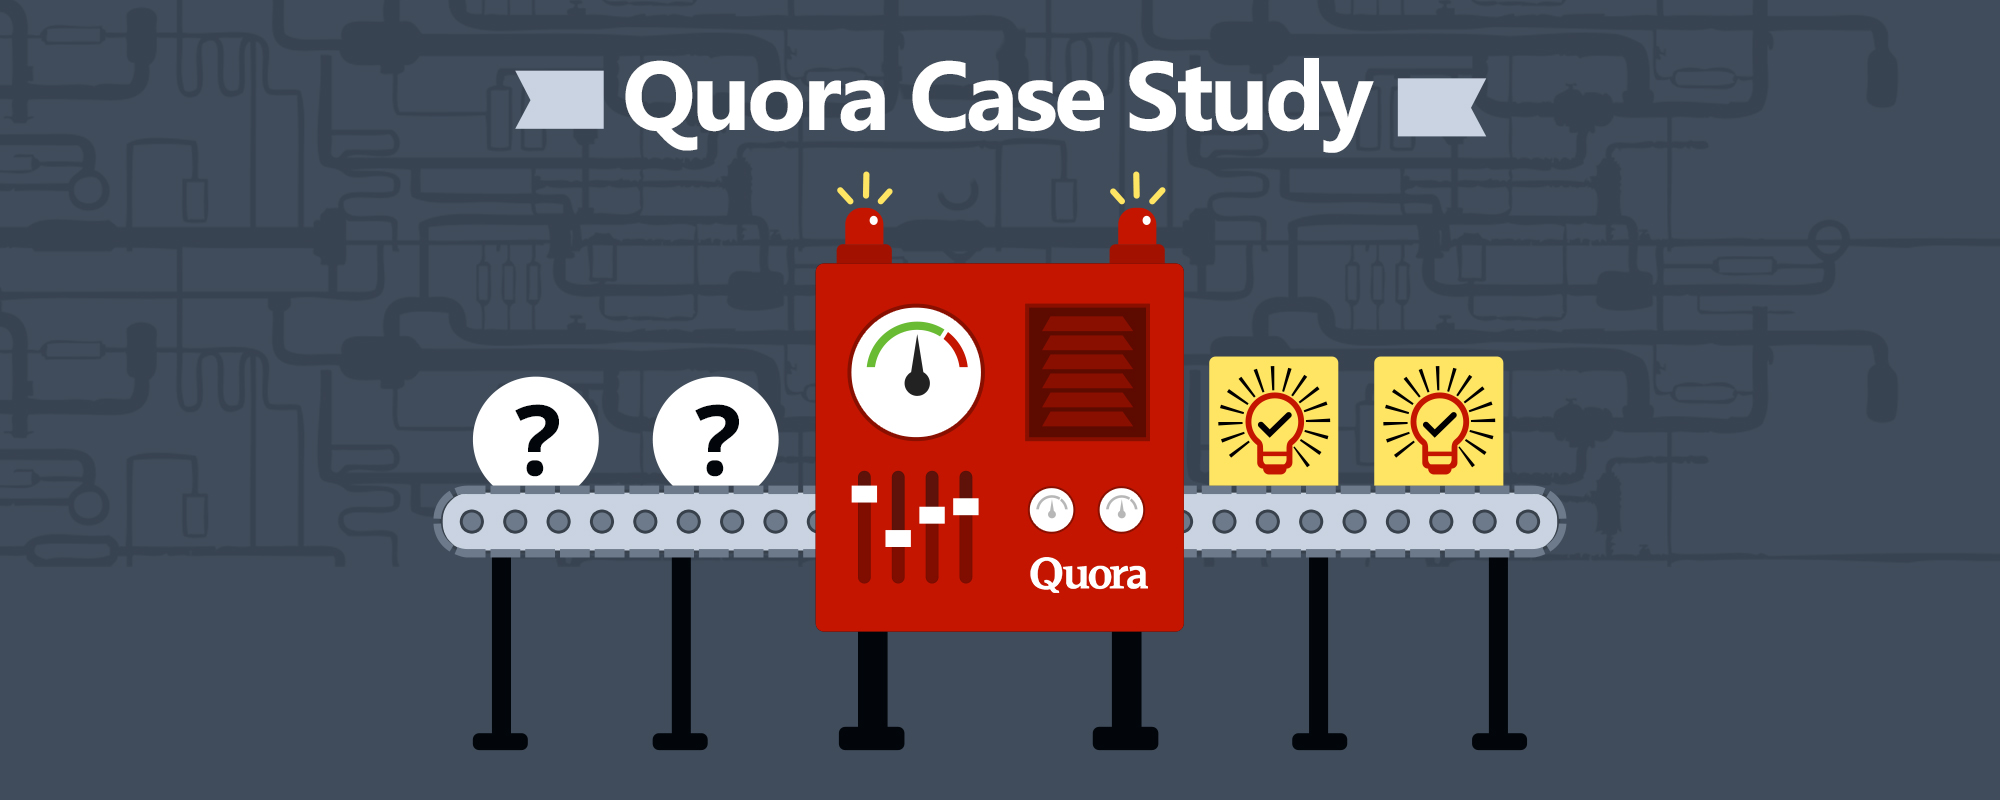 google case study questions and answers 20 common brand management interview questions and answers  kind of info  may not be readily available, a little bit of smart google search helps  [case  study interview question] let's say we want to enter market x, how.